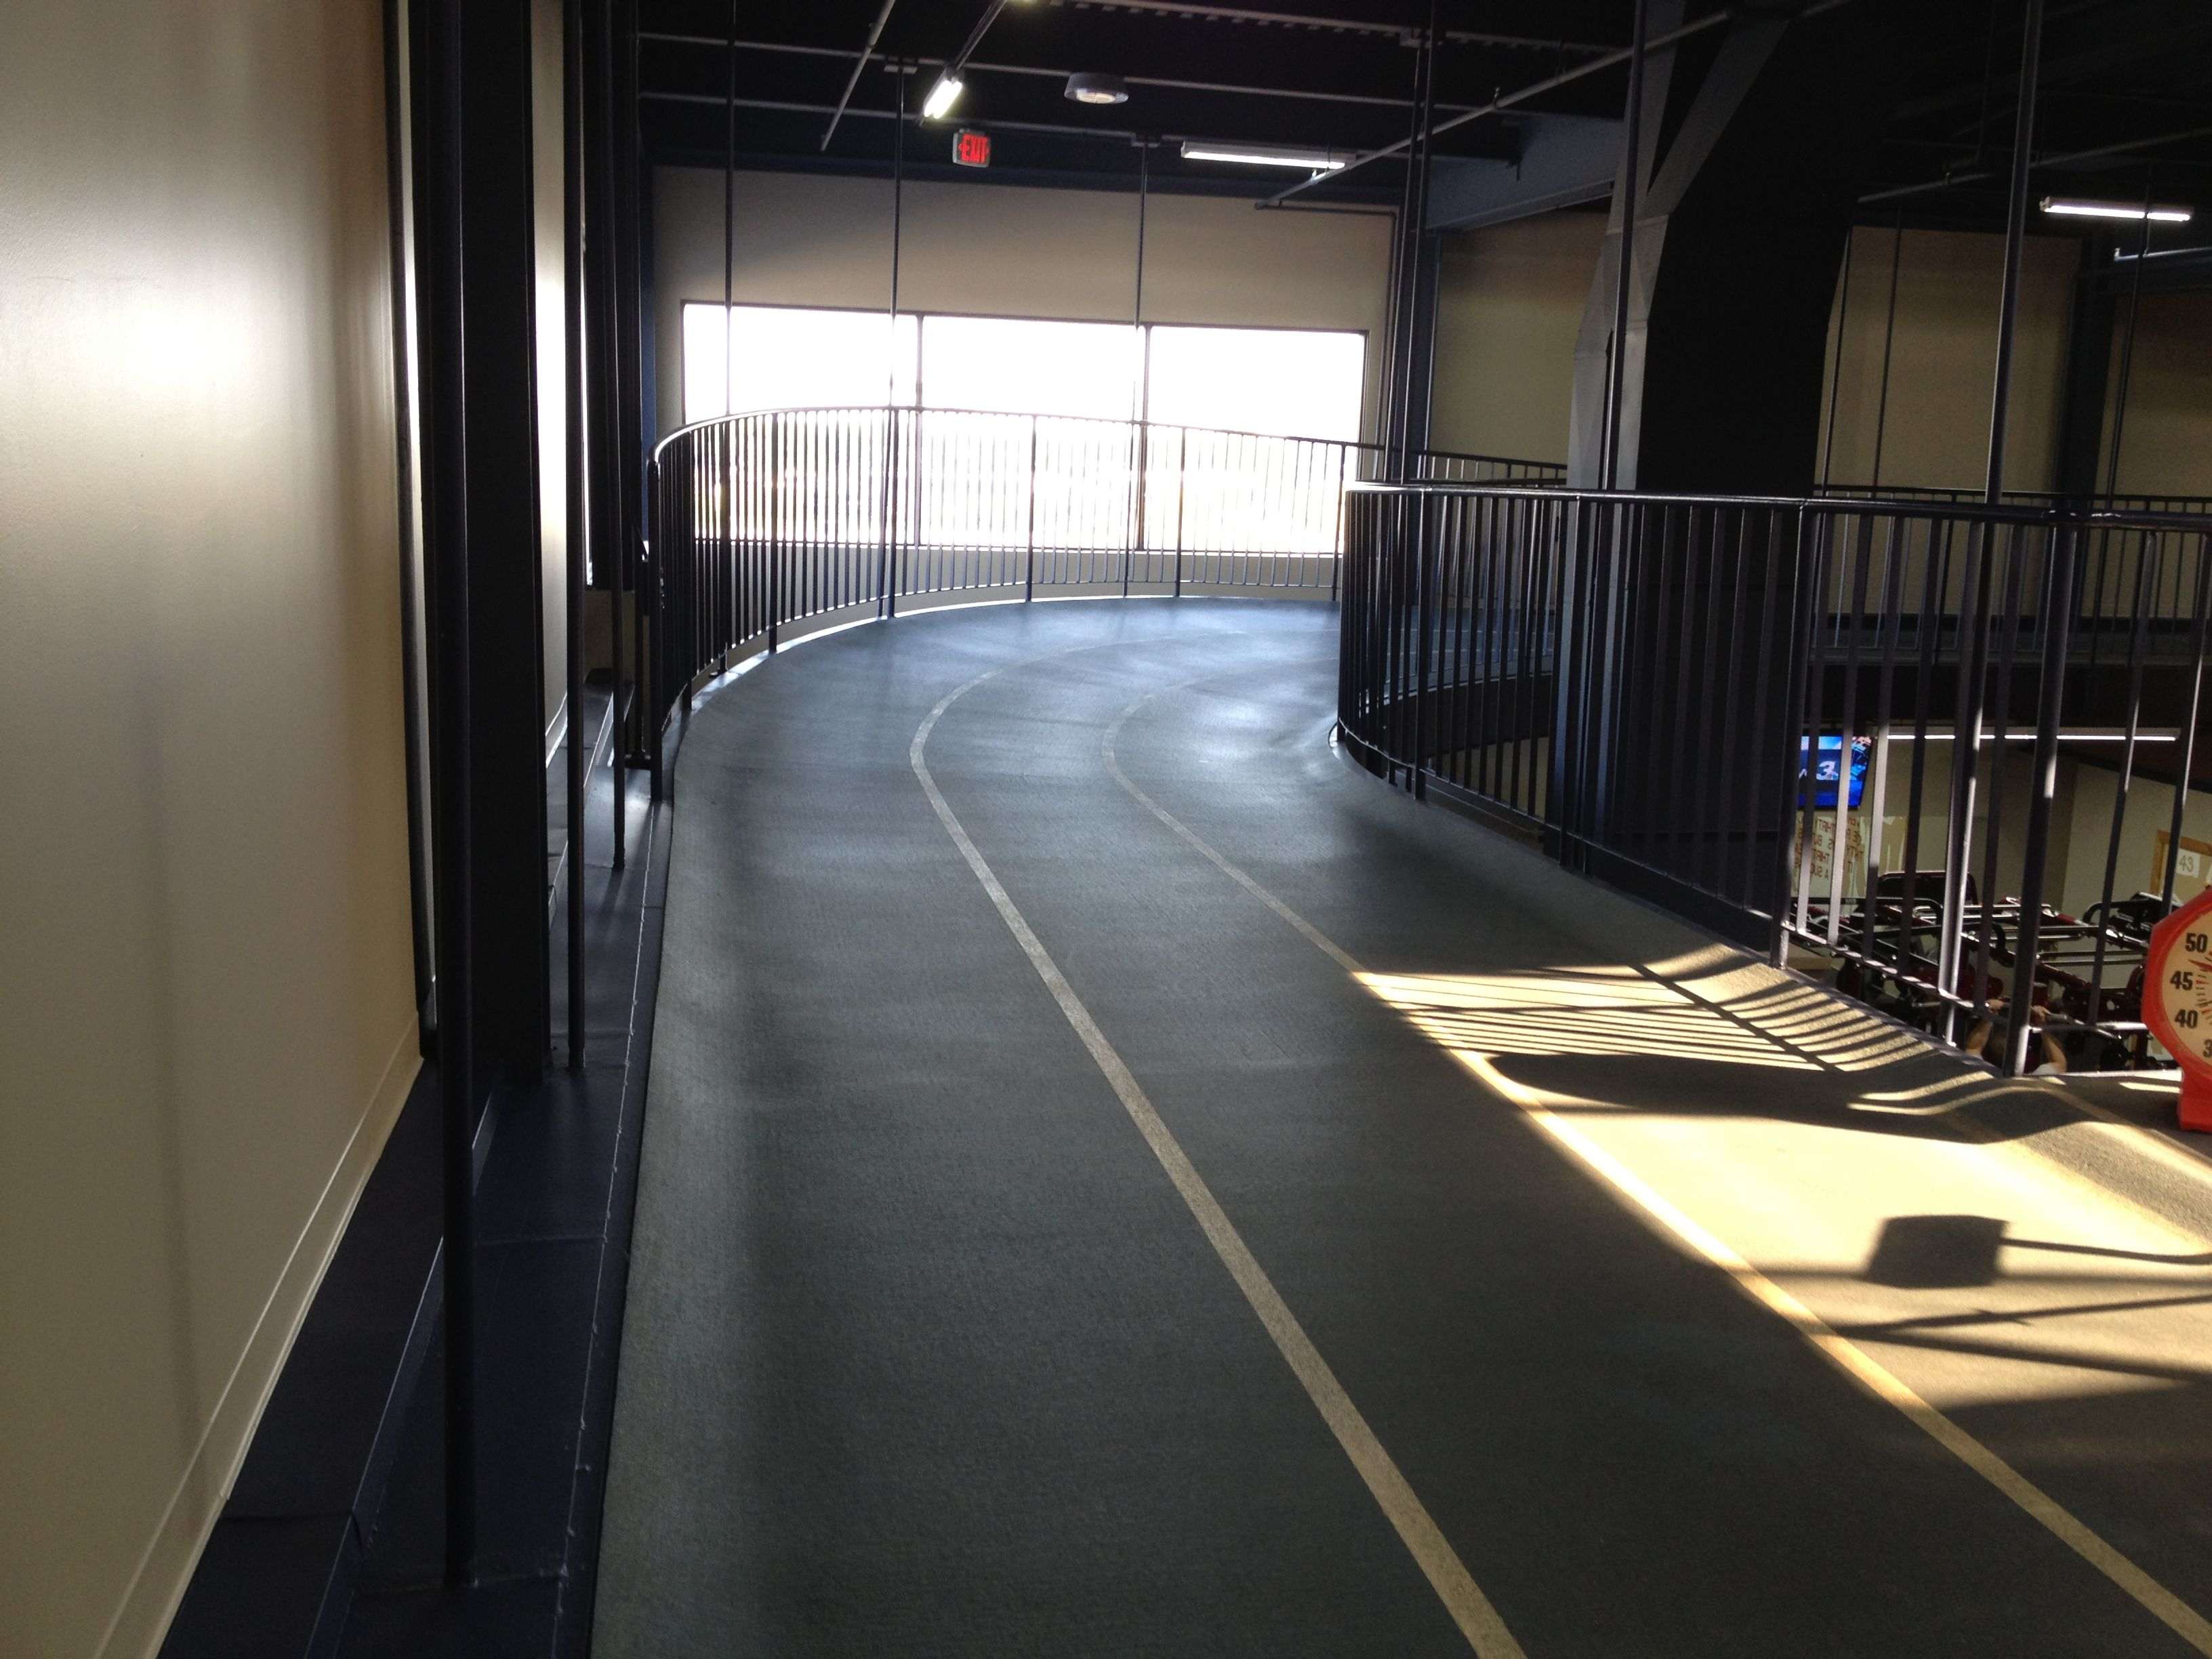 Run, jog or walk Cleveland Fitness Club's indoor track to